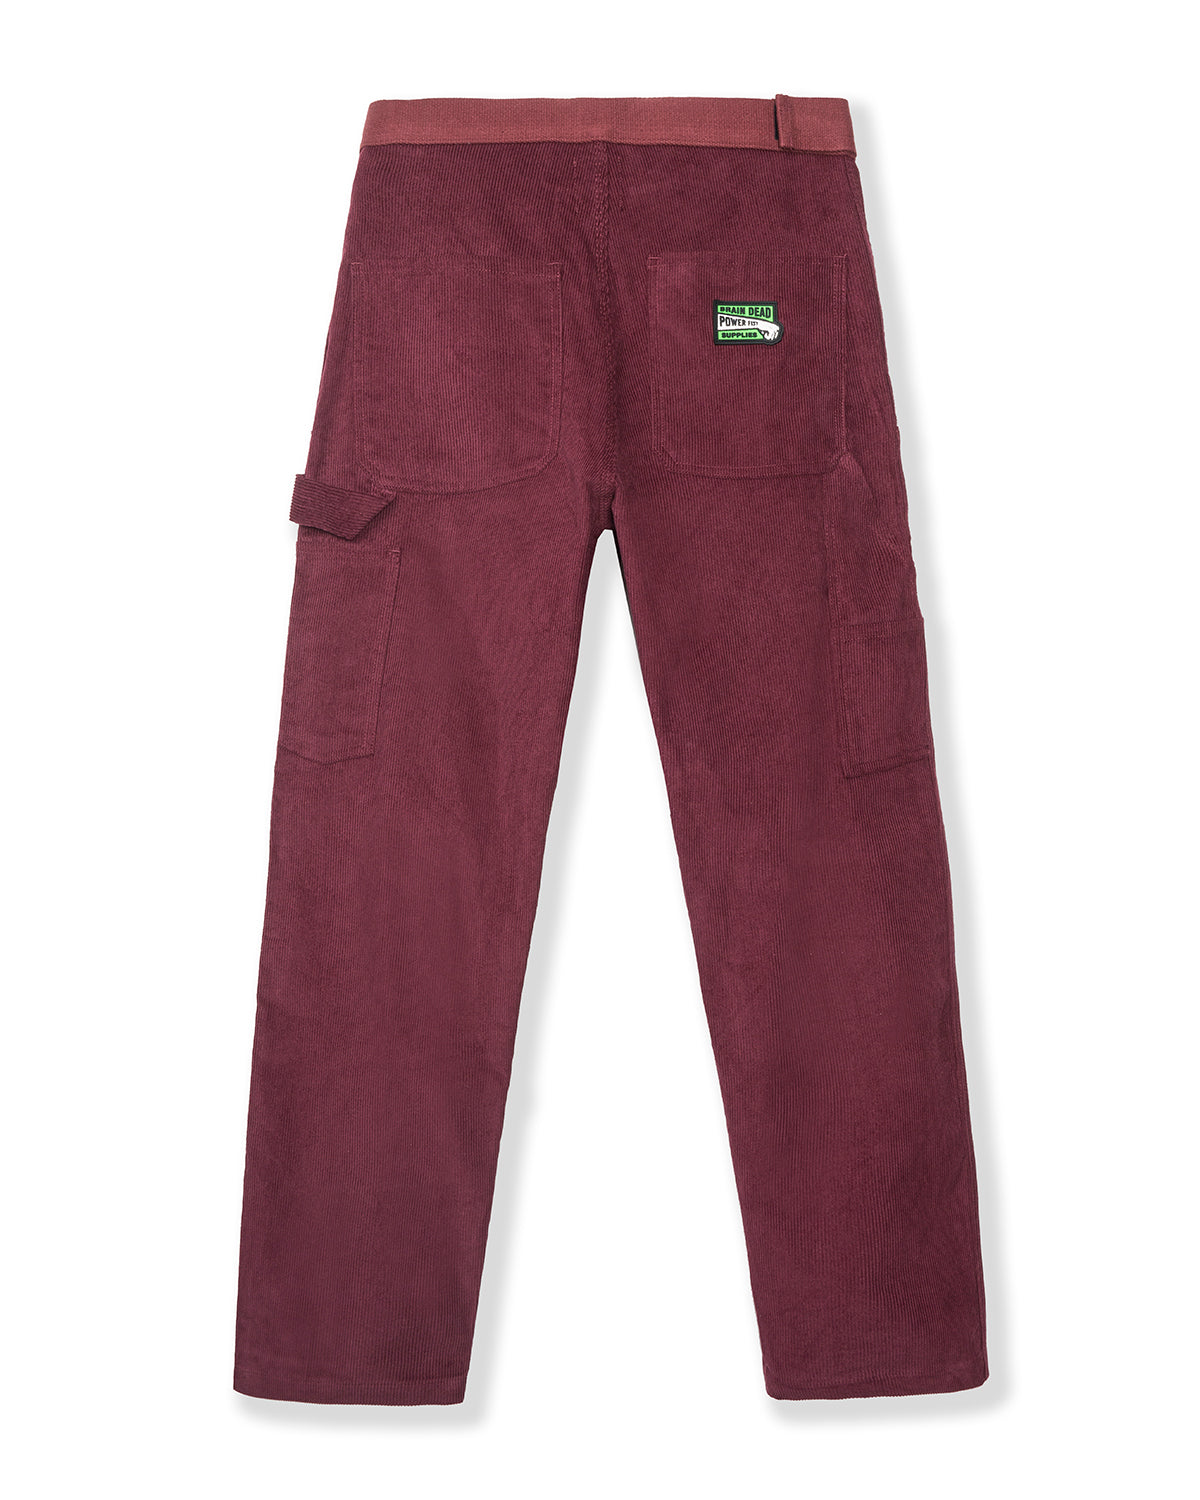 Hard/Software Velcro Corduroy Carpenter Pant - Maroon